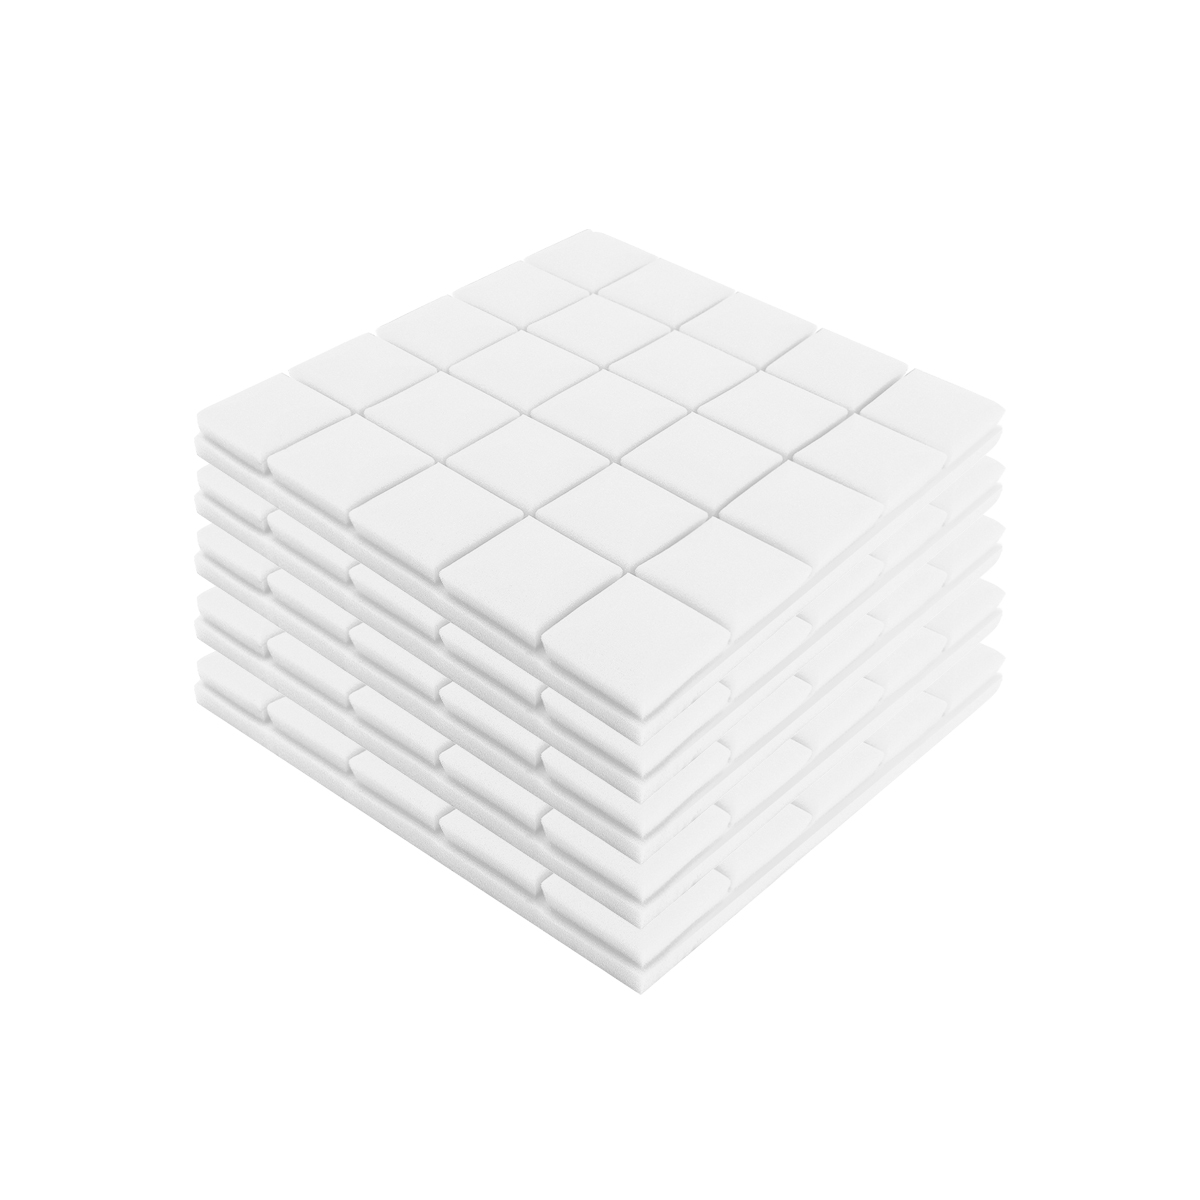 500x500x50mm 5pcs Soundproof Foam Acoustic Sound Stop Absorption Sponge Drum Room Accessories Wedge Tiles Polyurethane Foam